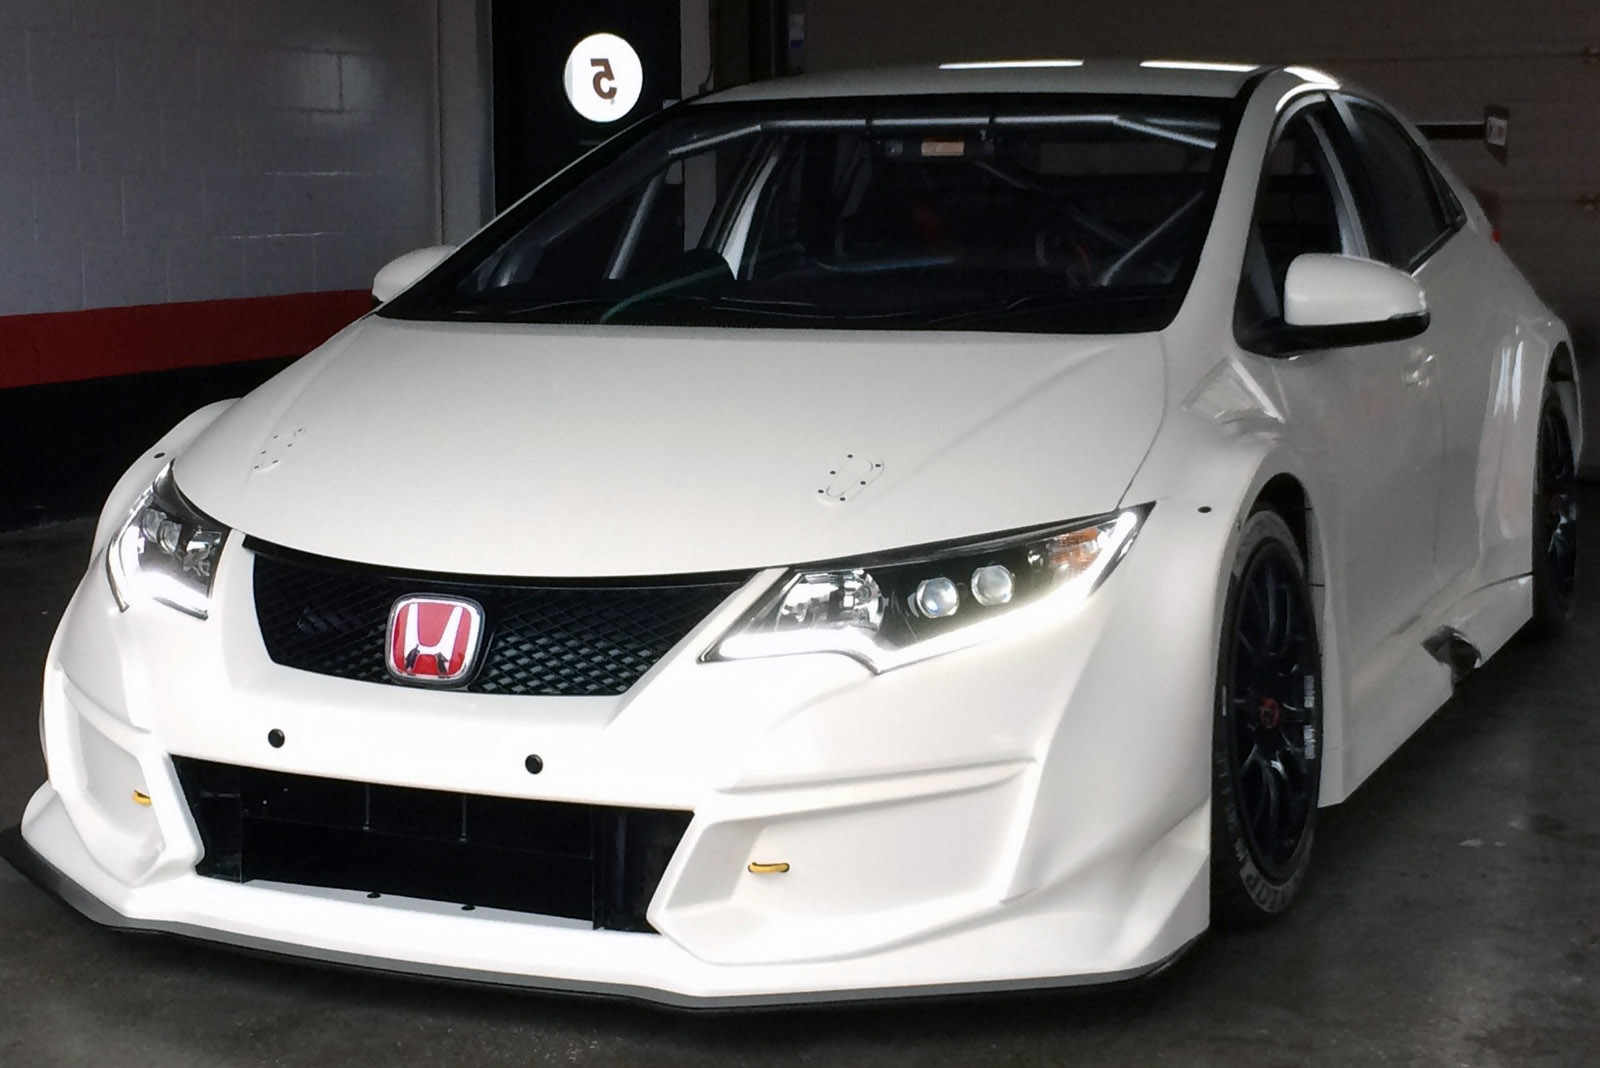 New Civic Type R Previewed In Racing Kit For BTCC Series